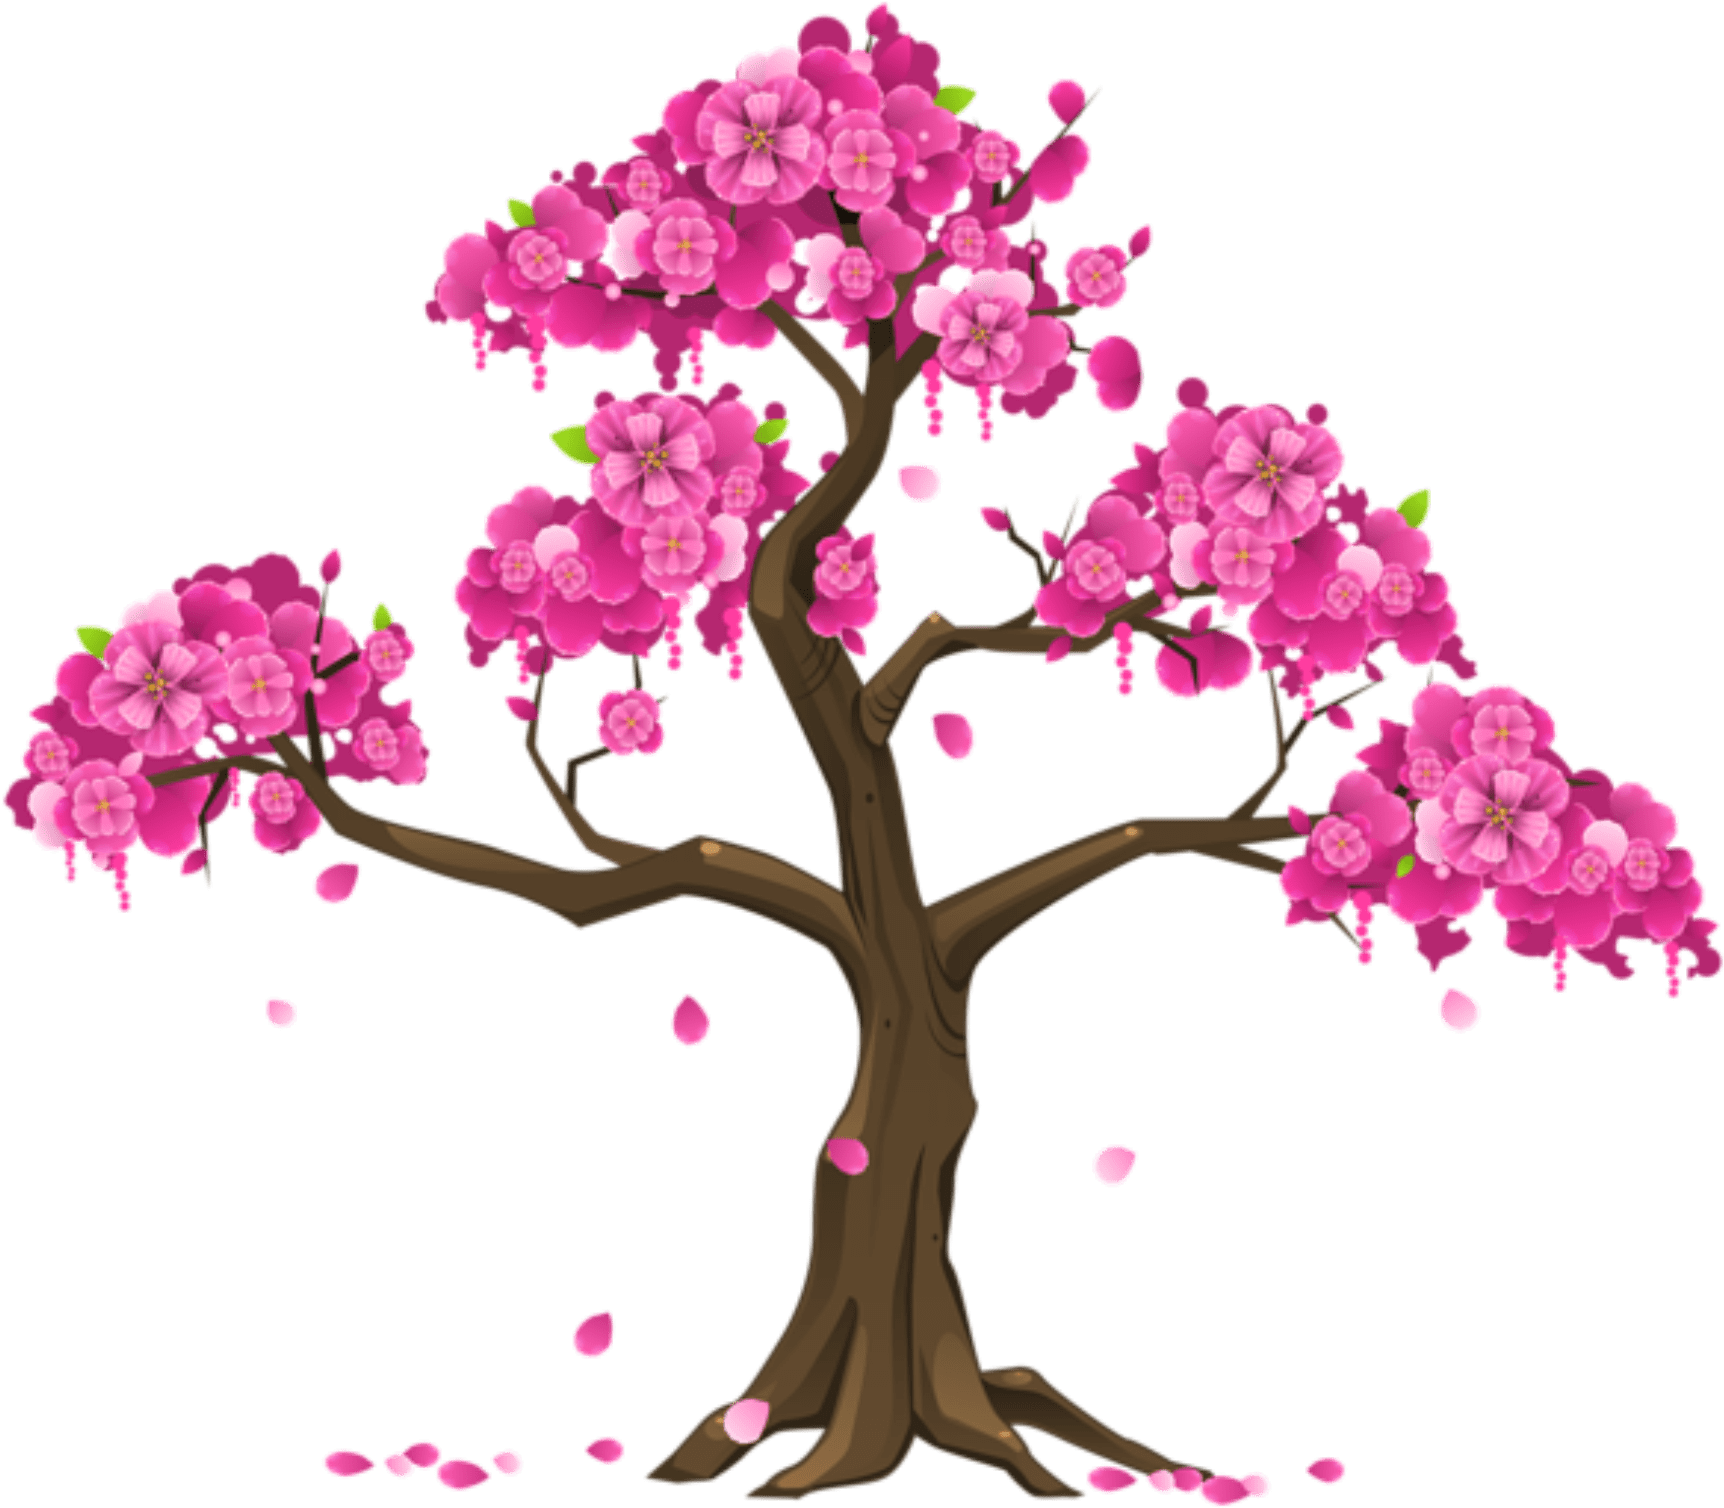 Pink Tree Png Clipart Image - Cherry Blossom Tree Clipart Transparent Png (600x525), Png Download